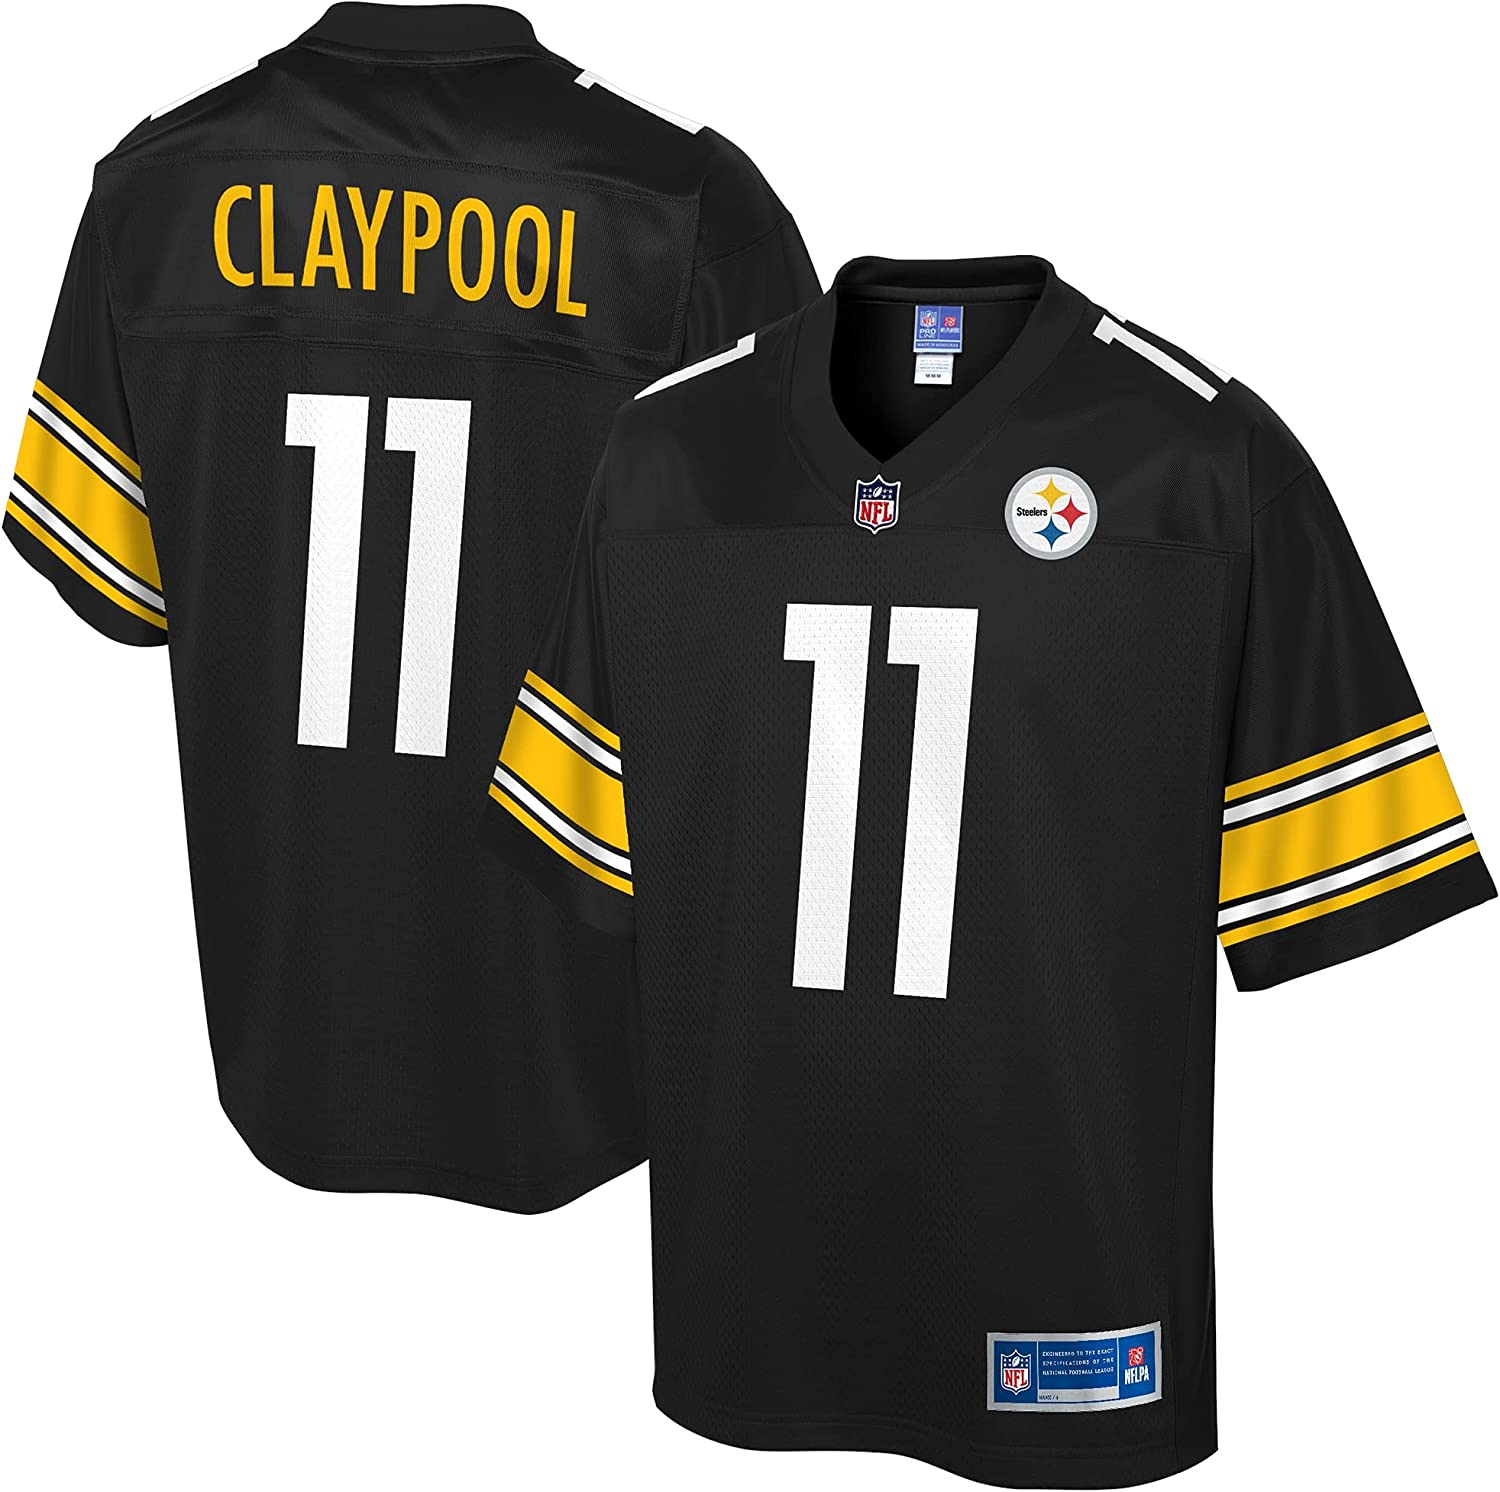 NFL PRO LINE Ranking TOP11 Max 48% OFF Men's Chase Team Pittsburgh Claypool Steelers Black